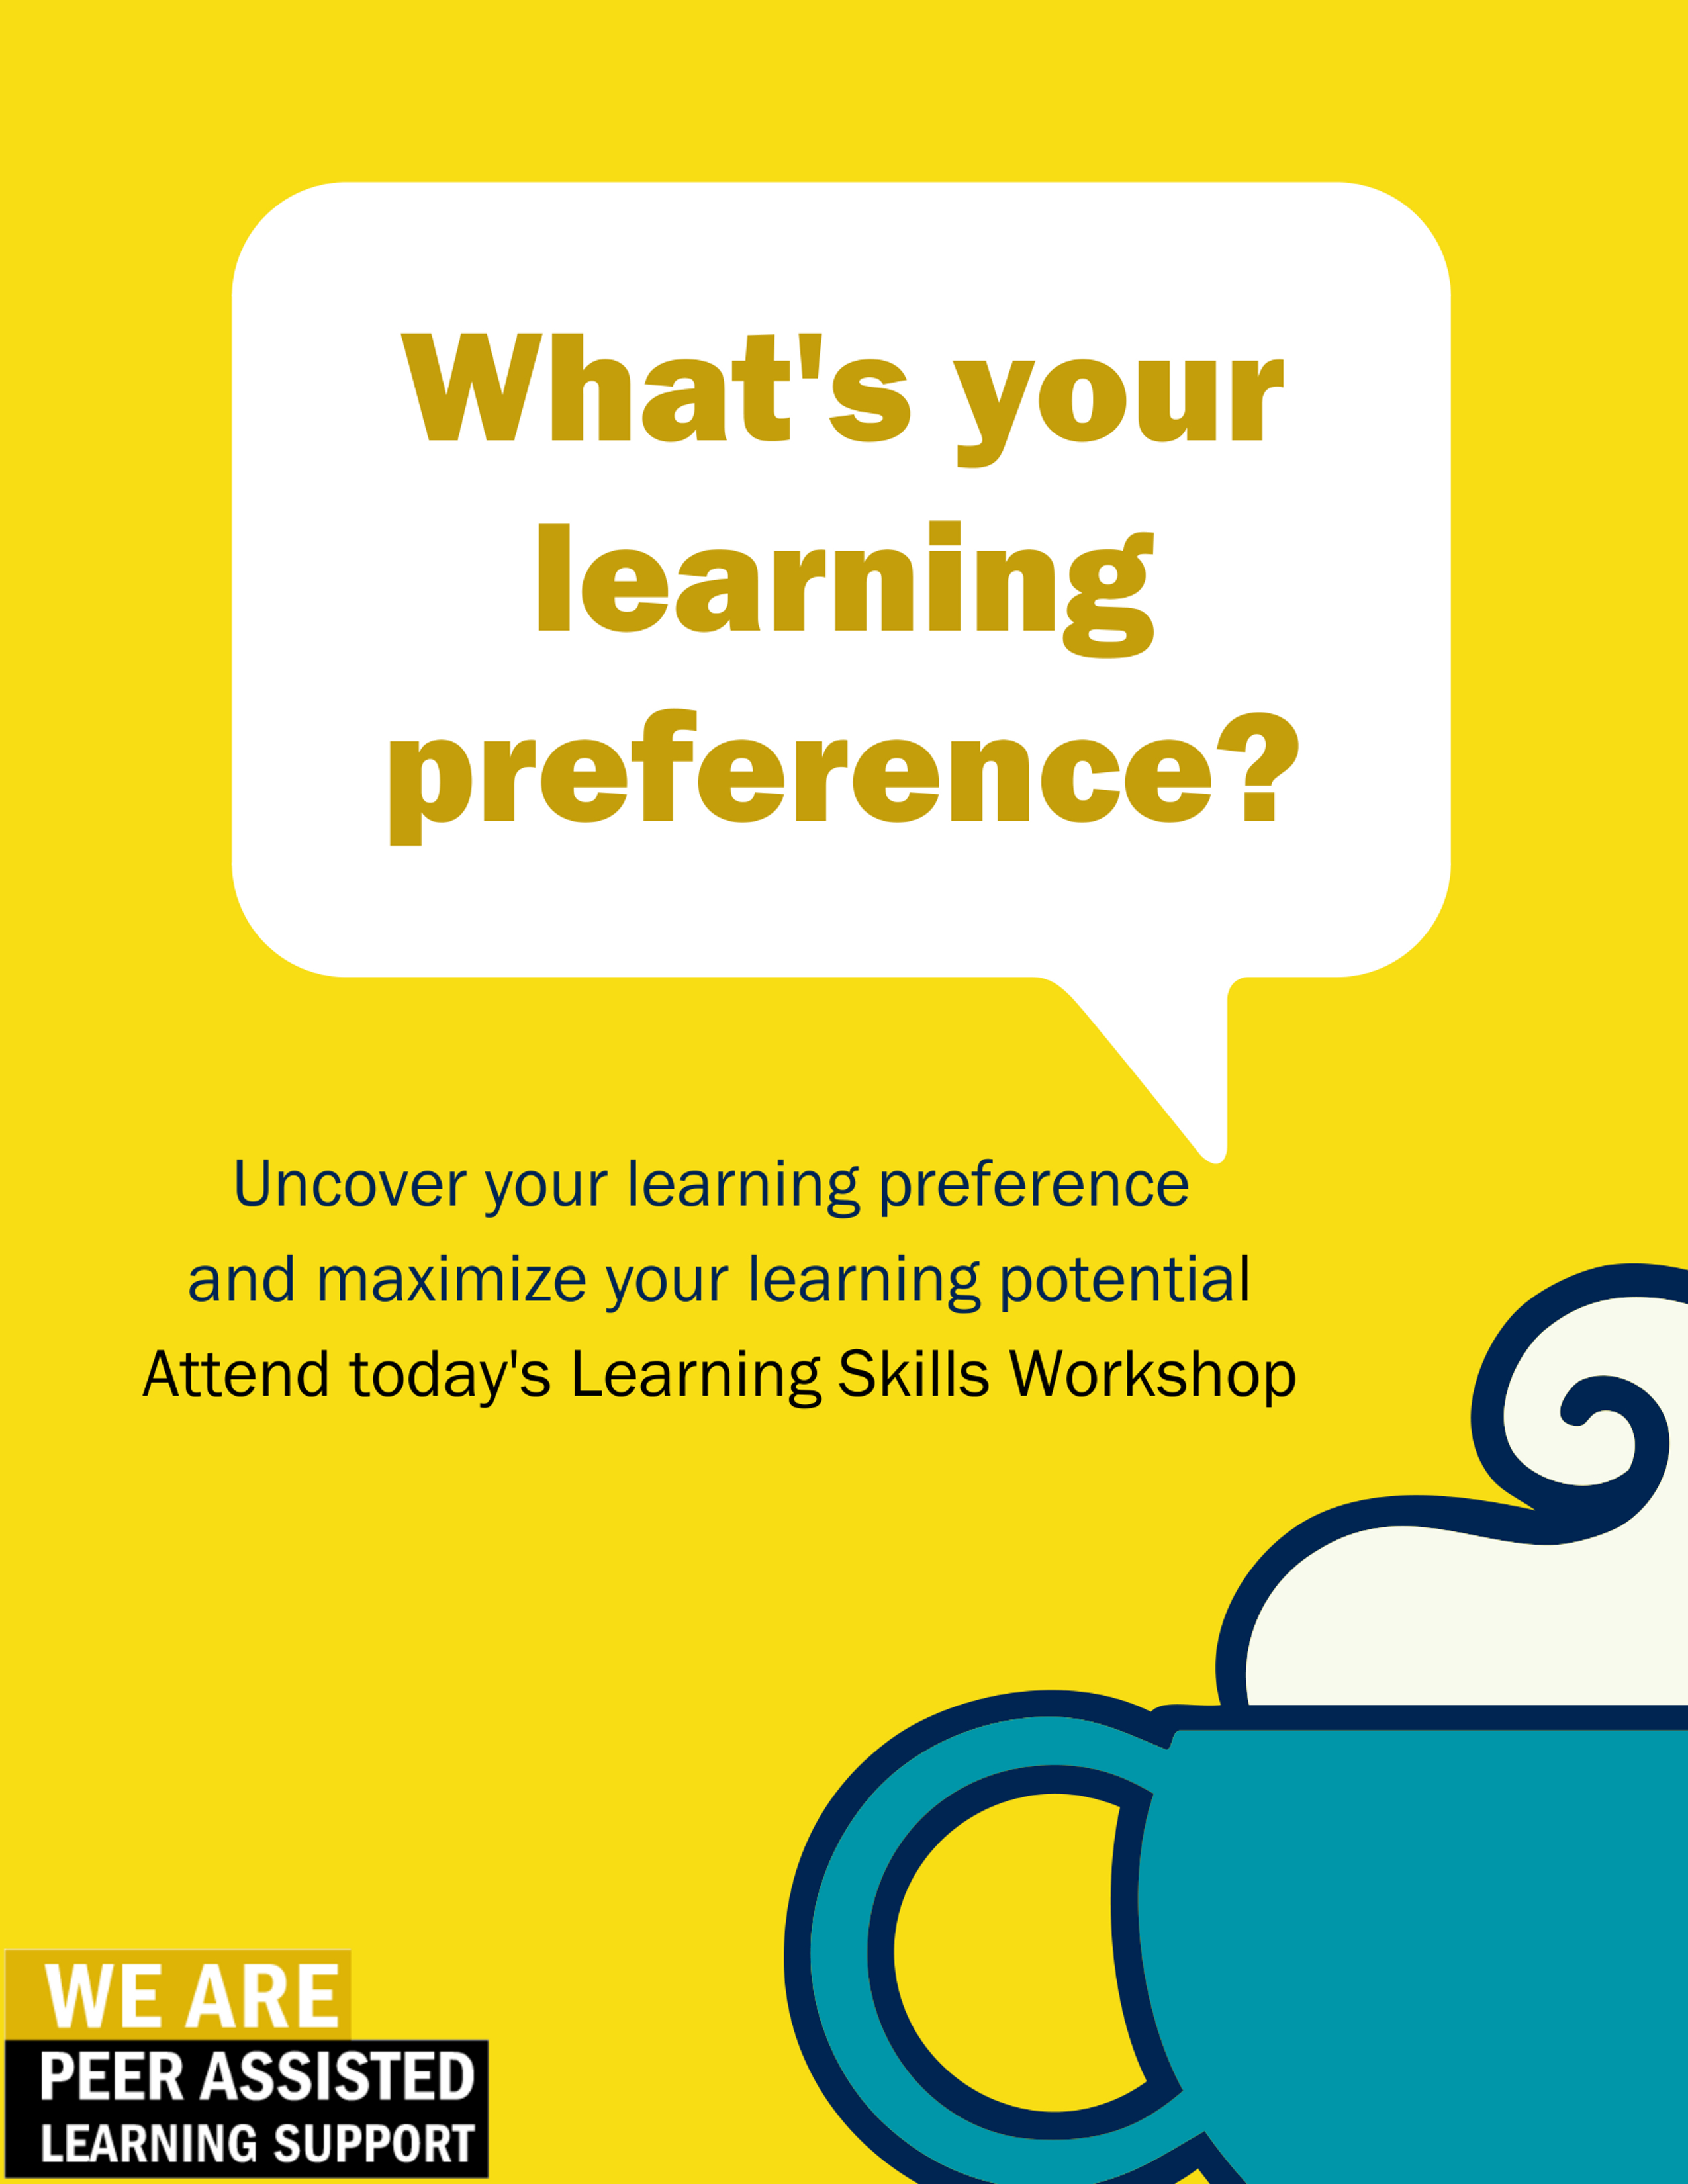 Whats your learning preference? Attend this learning skills workshop to maximize your potential!